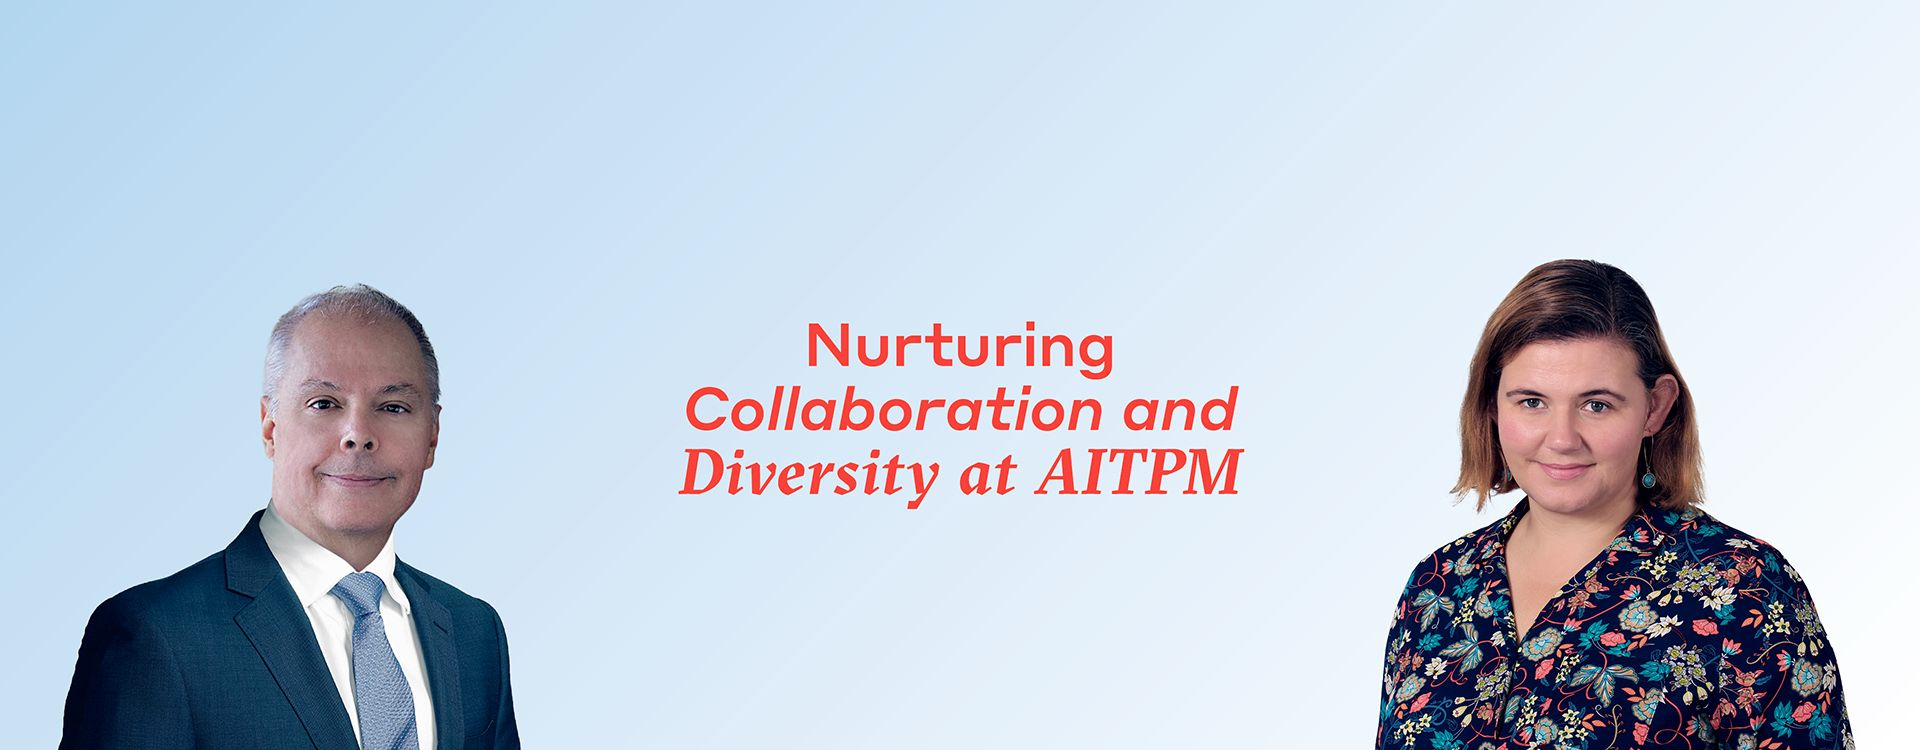 Rick Donnelly and Mary Haverland promote nurturing, collaboration and diversity at AITPM